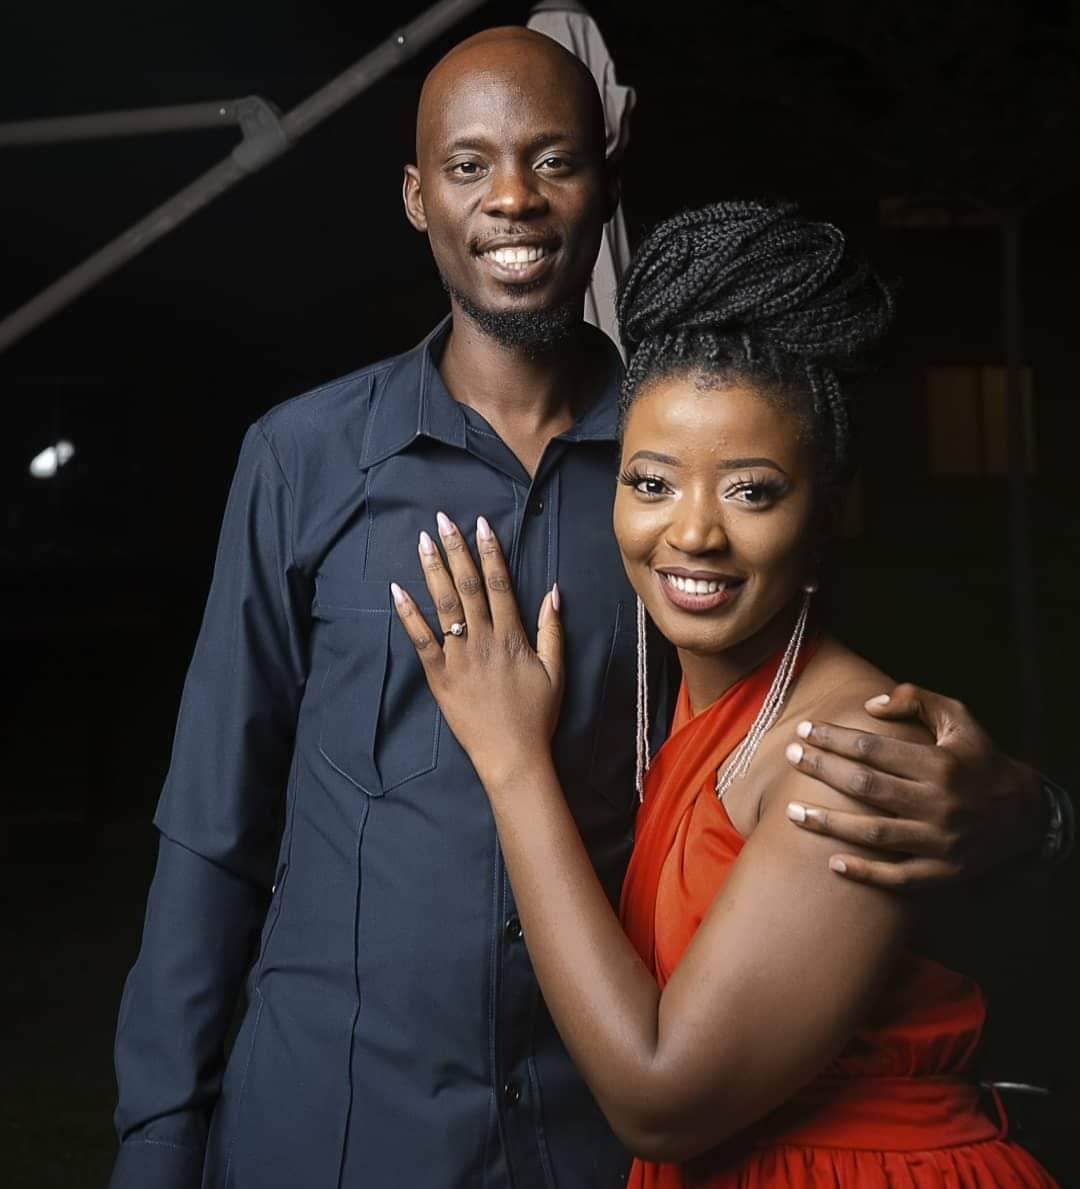 Photo of Pompi and Esther Chungu engaged